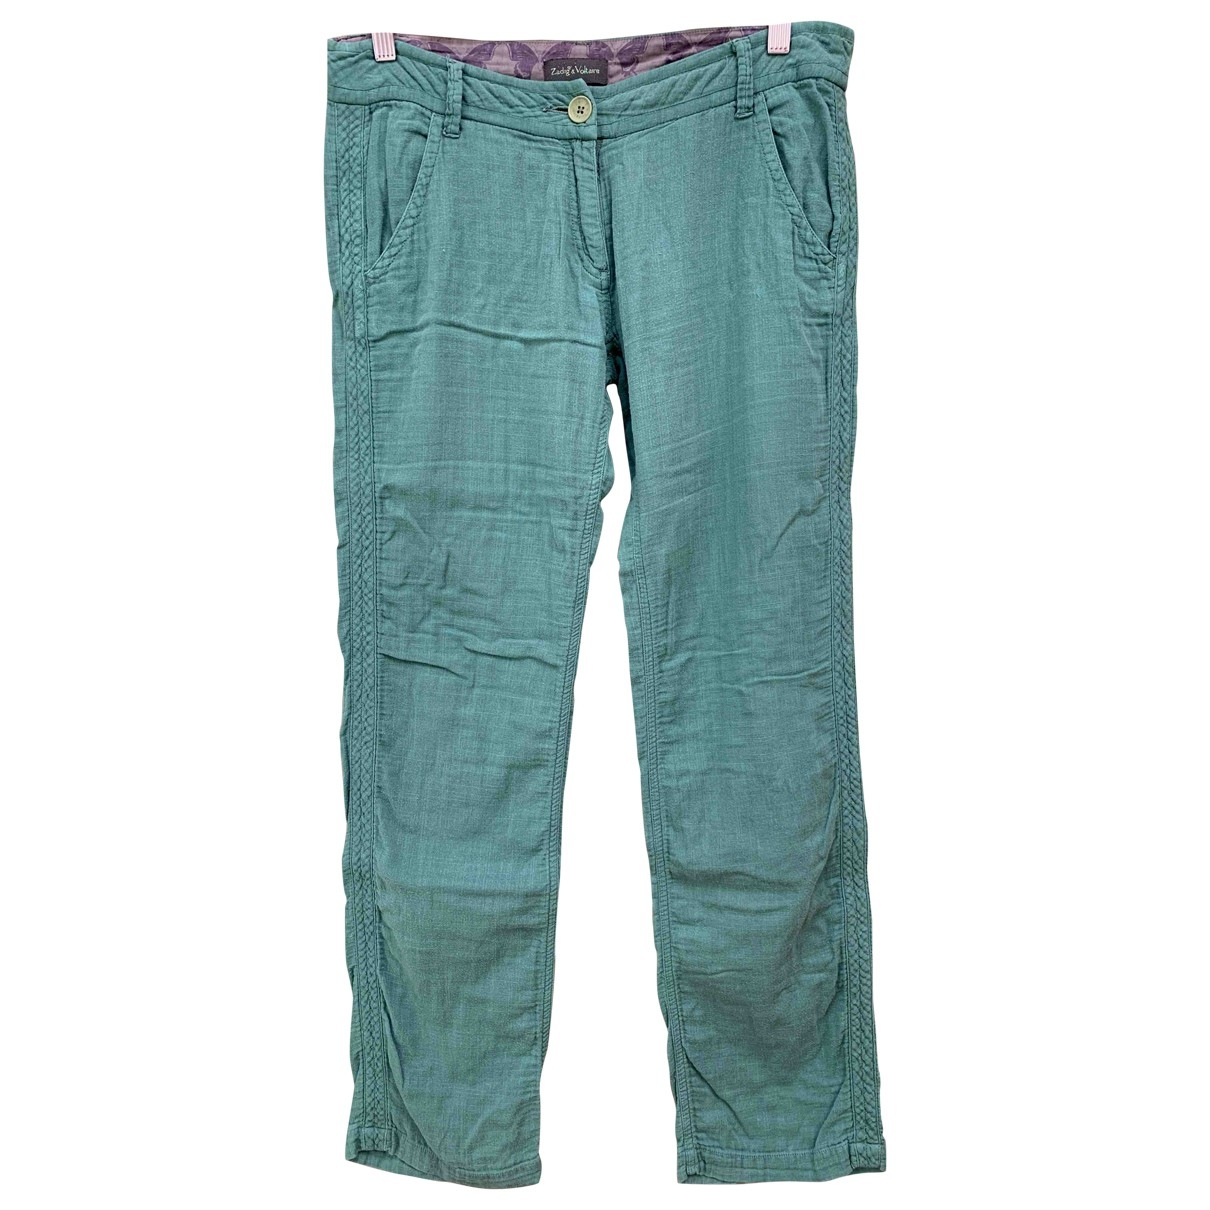 Zadig & Voltaire \N Green Cotton Trousers for Women M International